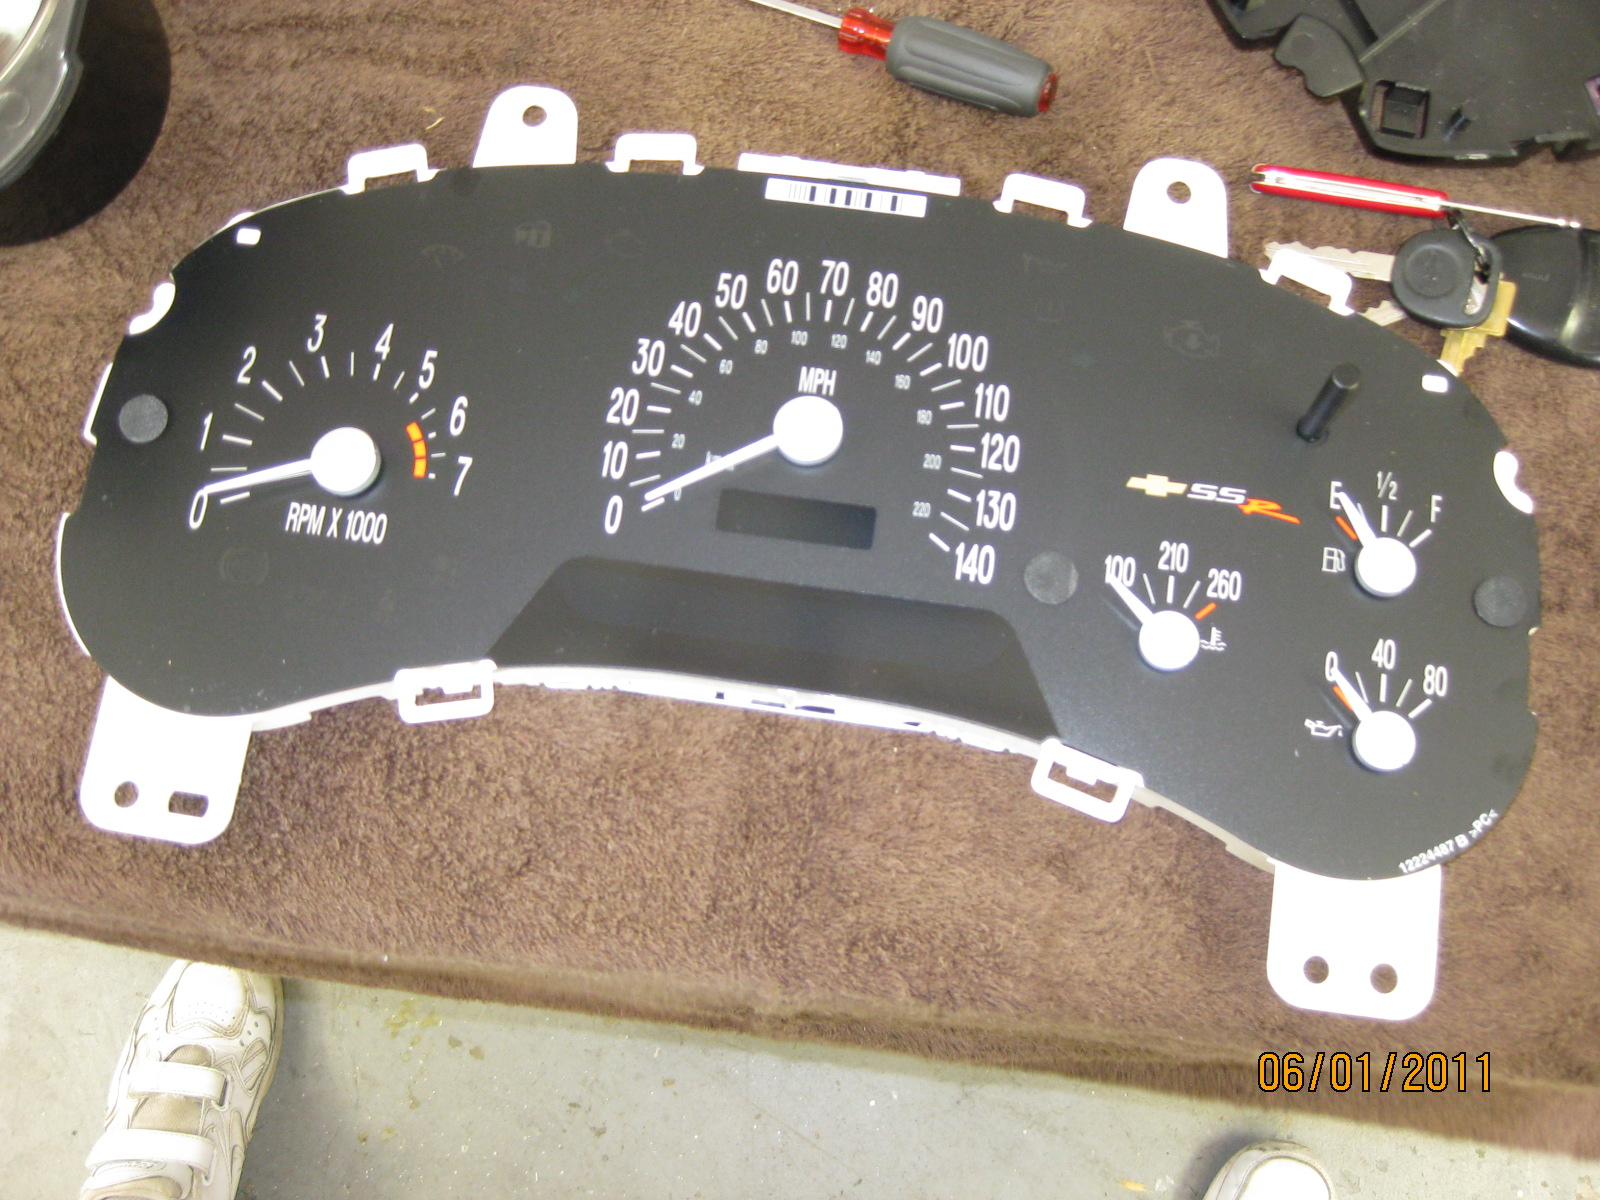 Replaceing speedo gauge face-11-0601-45.jpg